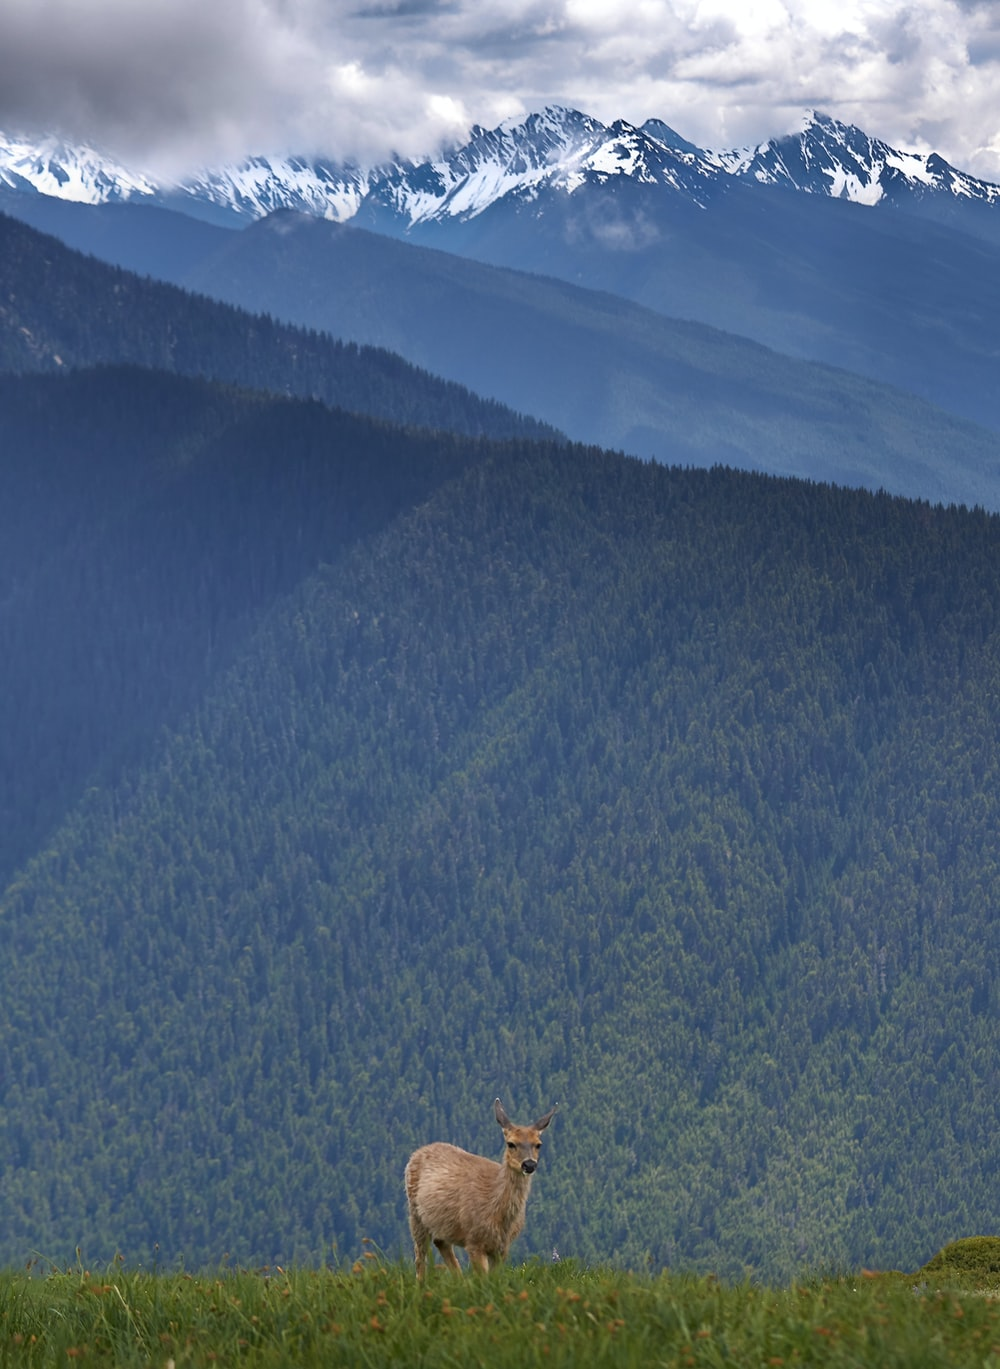 brown deer in green field viewing mountain under blue and white skies